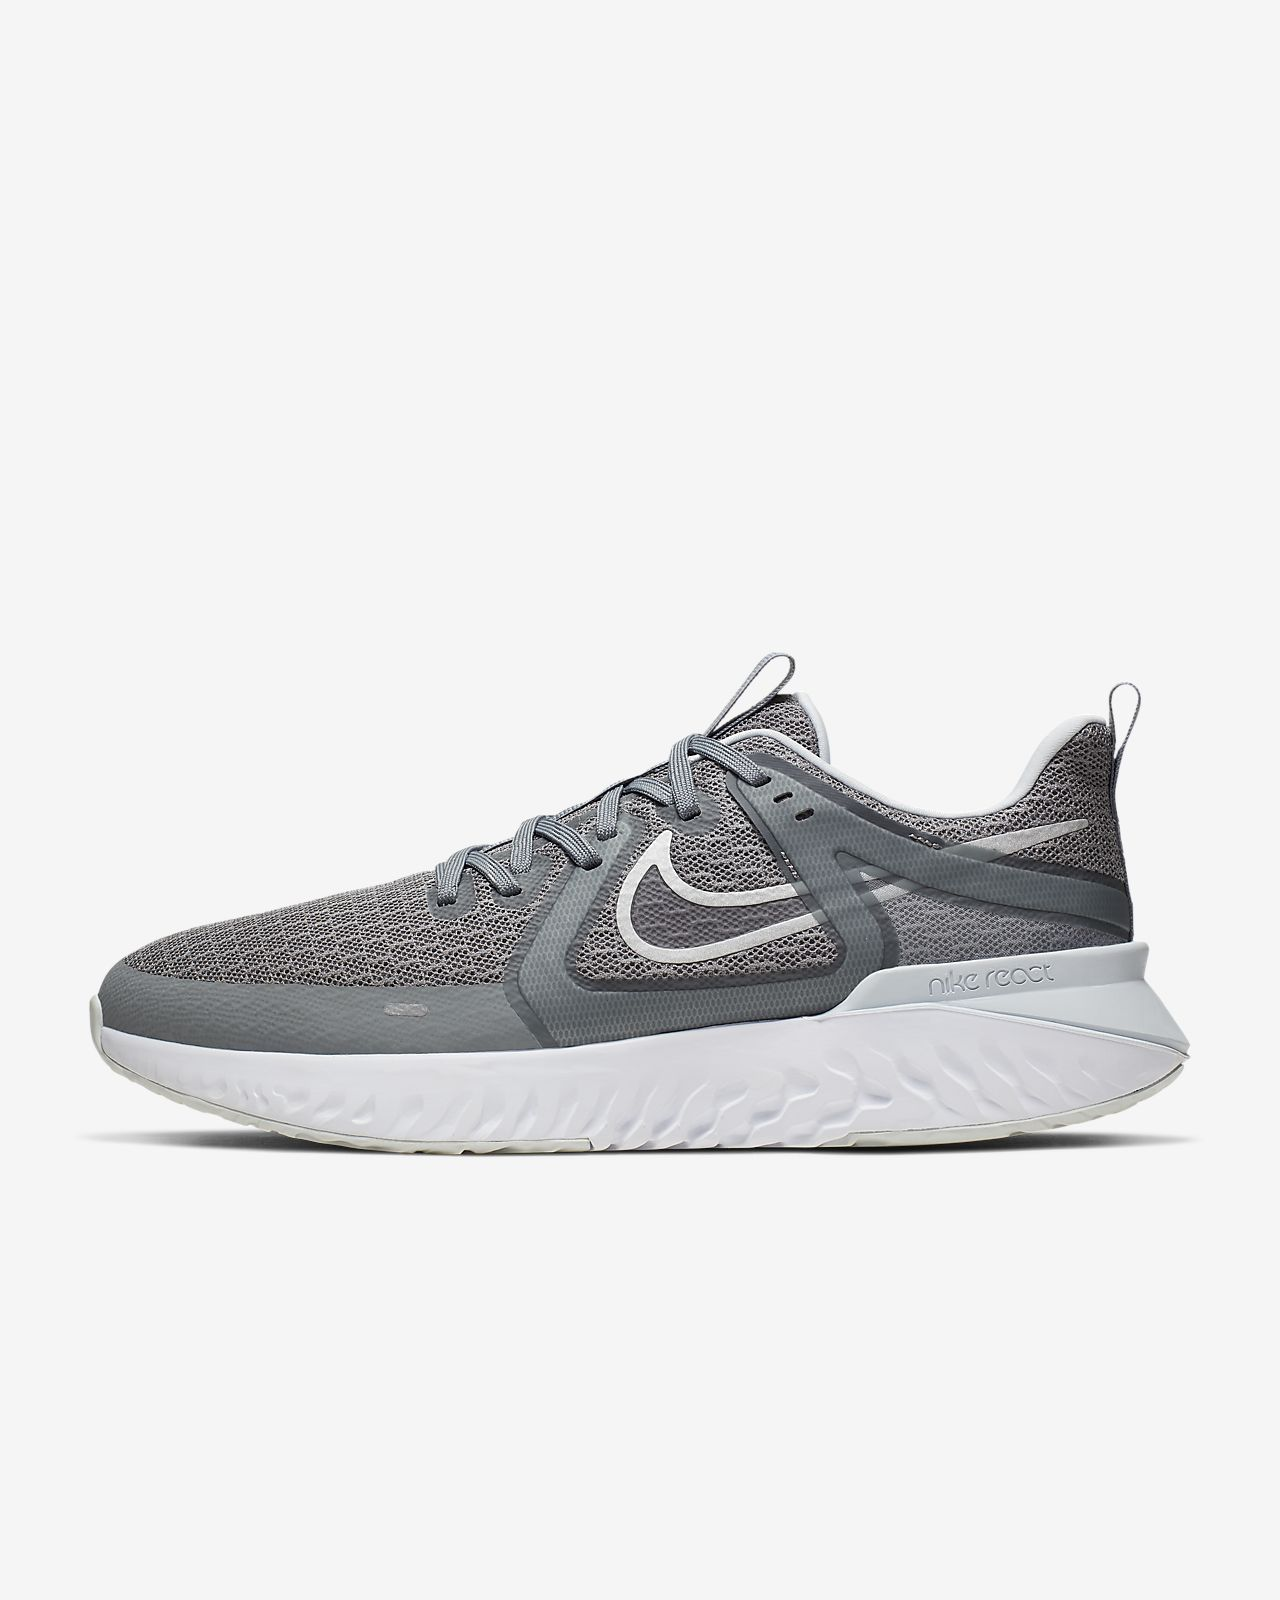 Nike Legend React 2 Men's Running Shoe